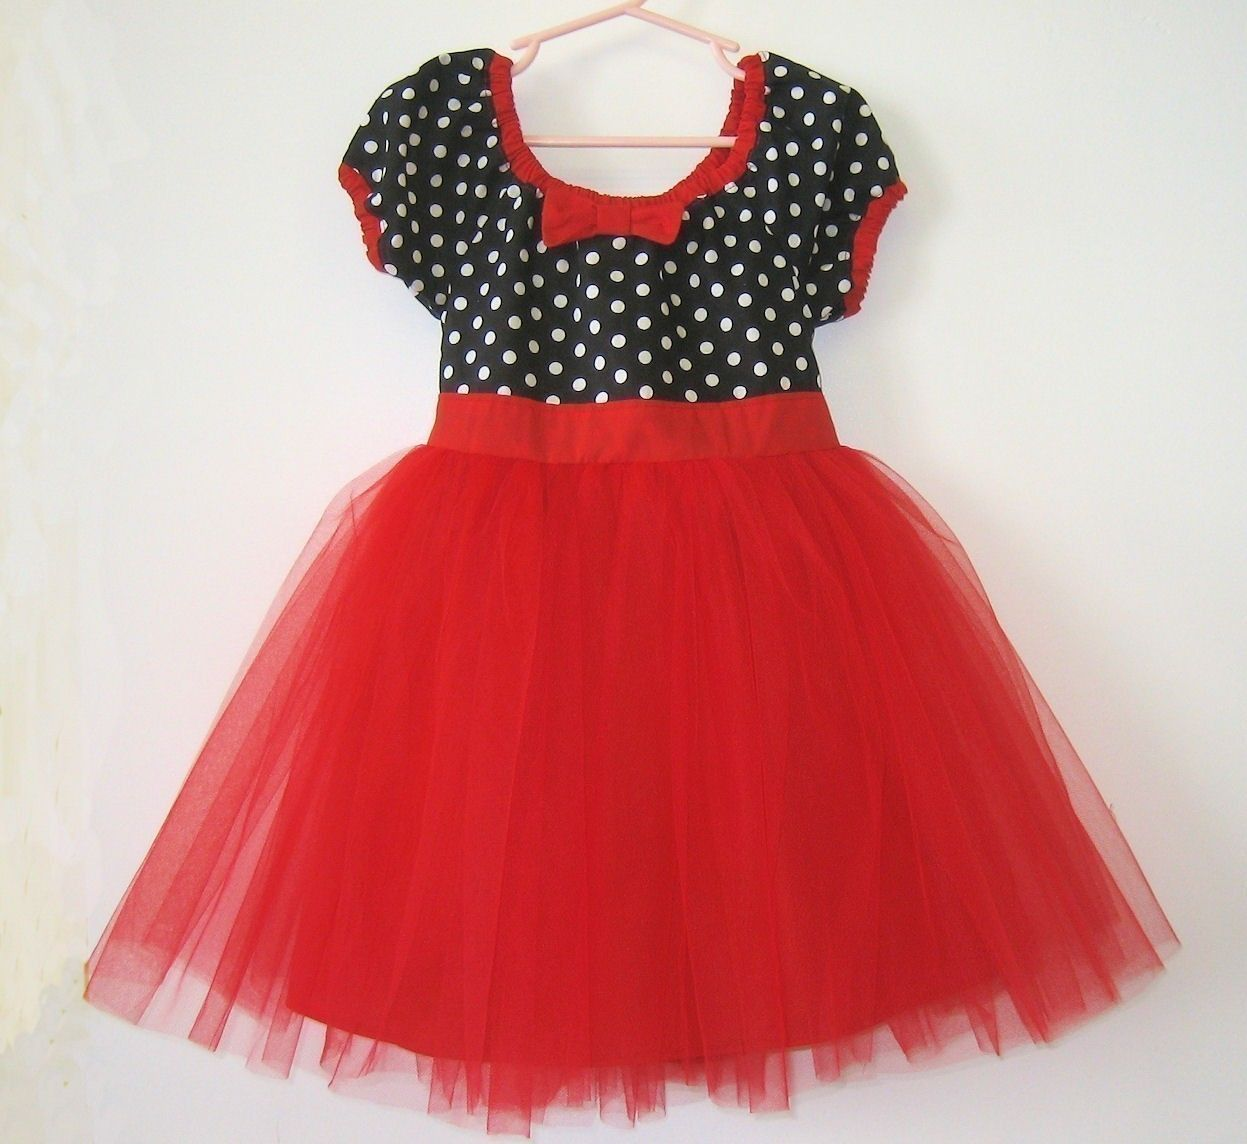 Tutu Party Dress In Retro Black And White Polka Dot Red Tulle Skirt